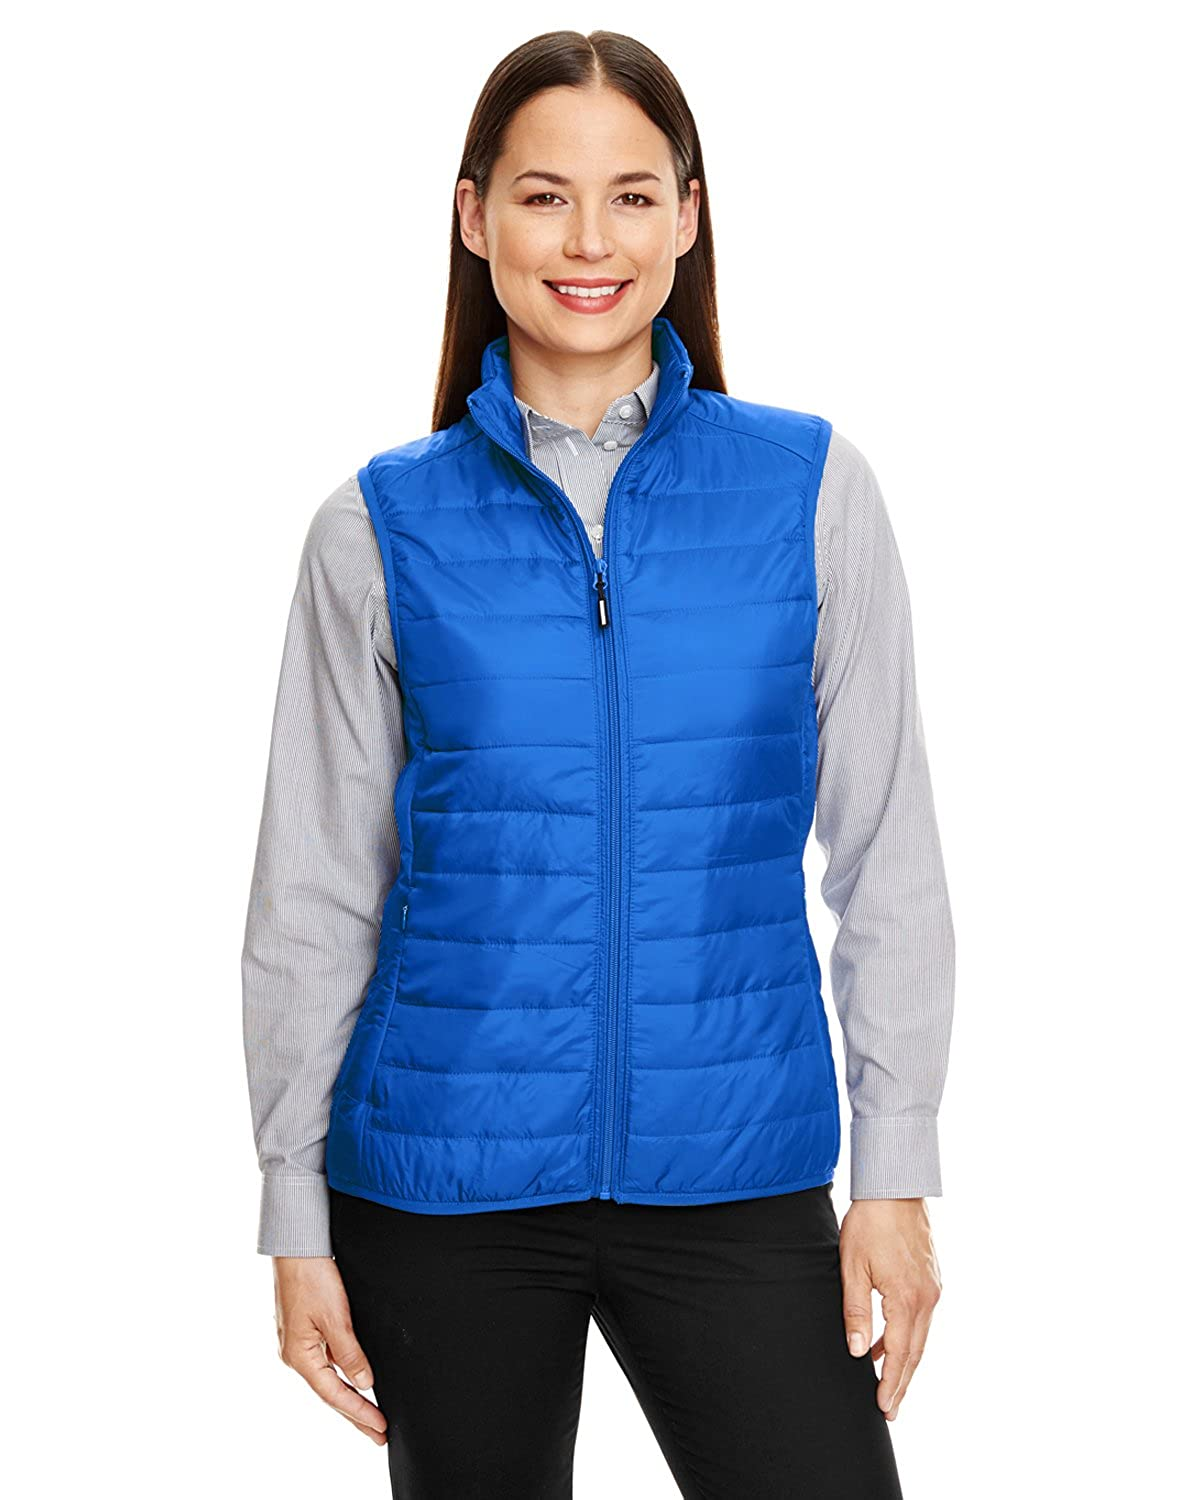 Ladies' Prevail Packable Puffer Vest TRUE ROYAL 438 3XL Ash City - Core 365 CE702W